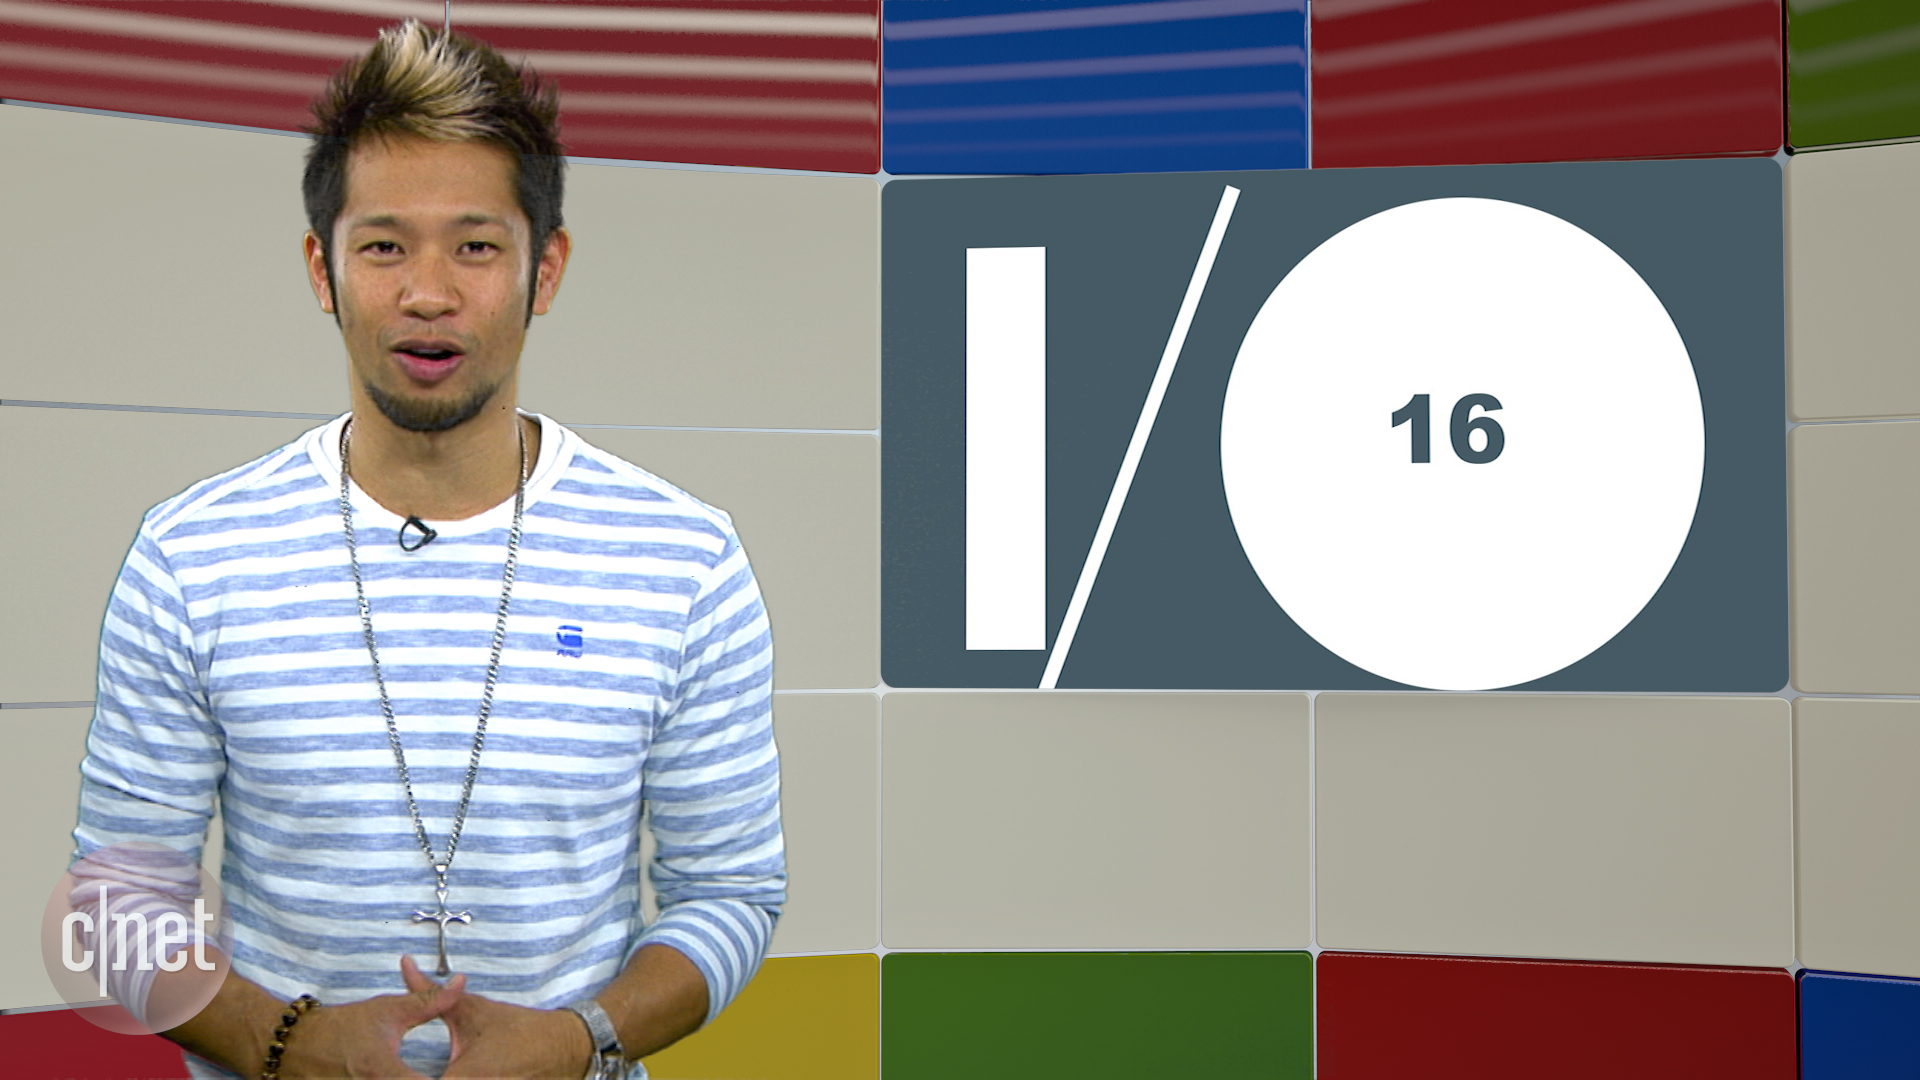 Video: What to expect at Google I/O 2016: Android VR